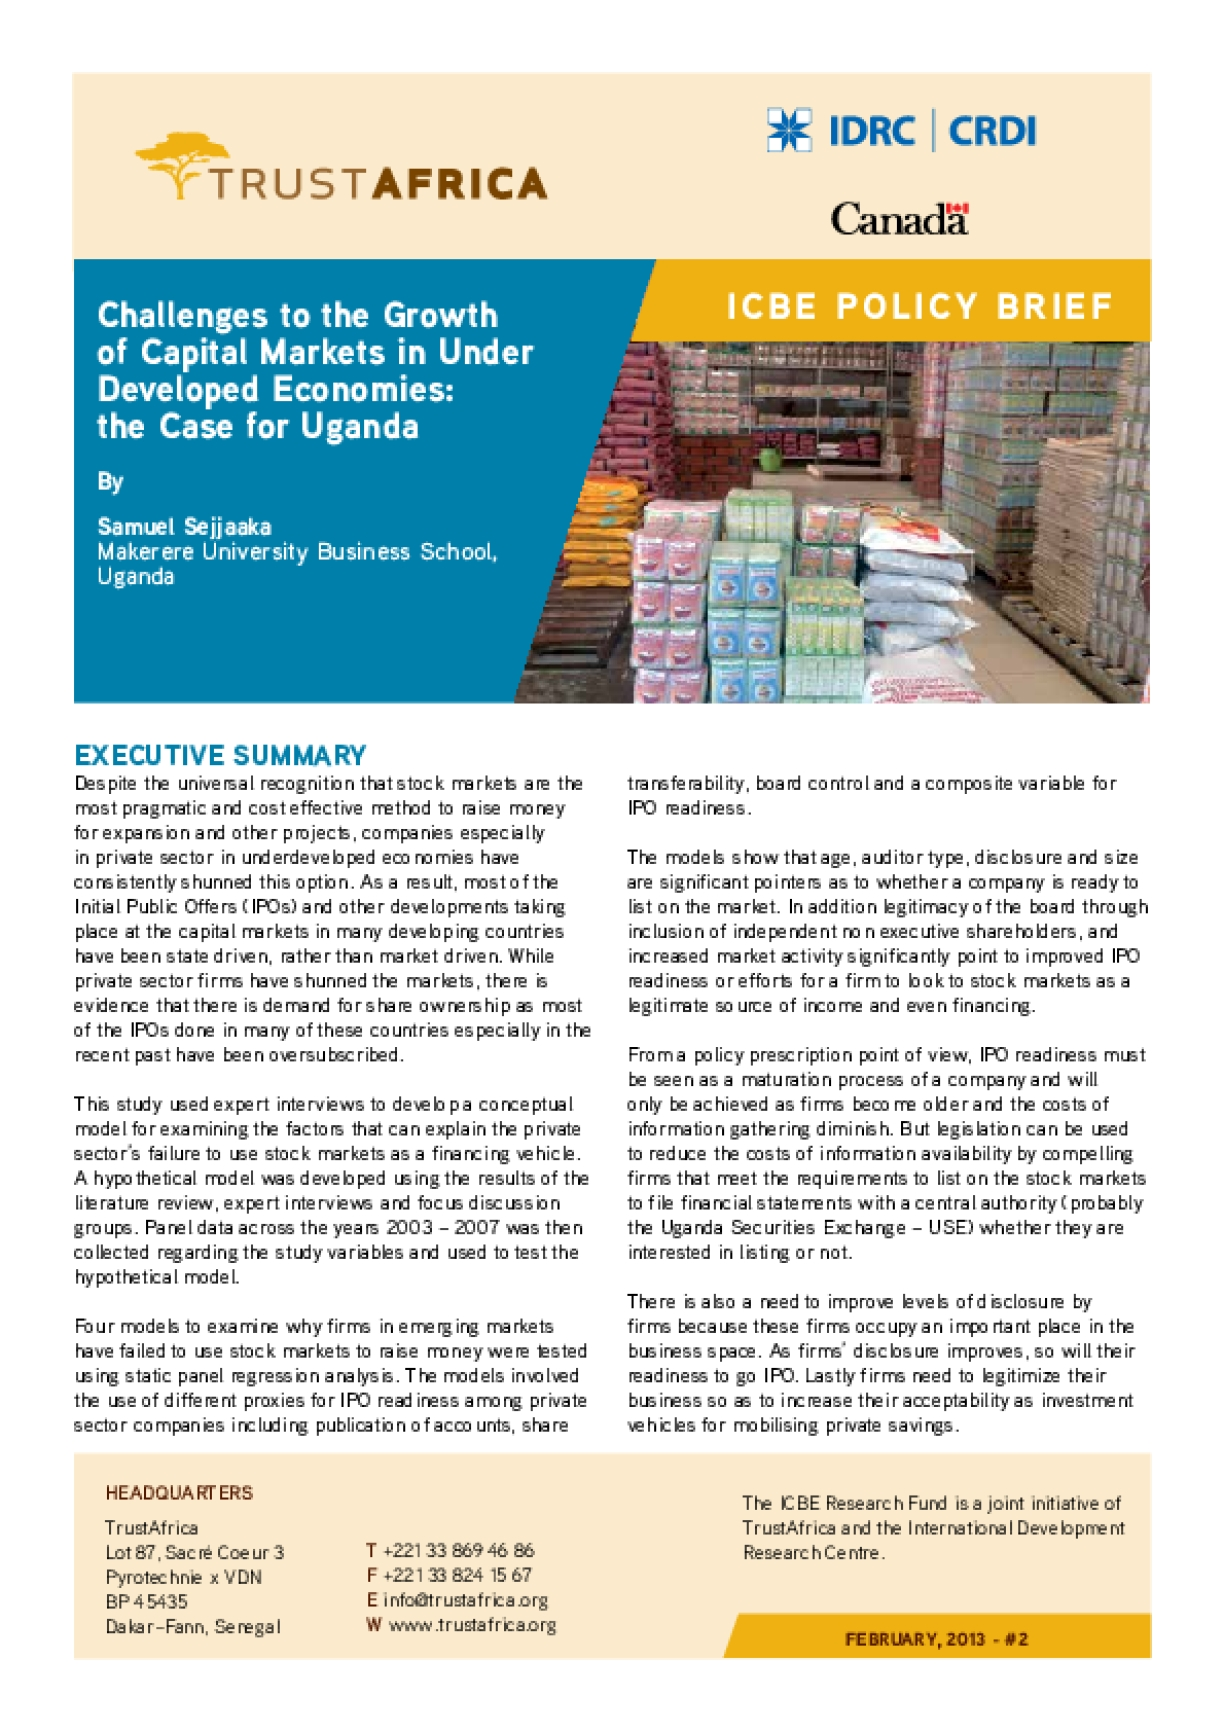 Challenges to the Growth of Capital Markets in Under Developed Economies: The Case for Uganda